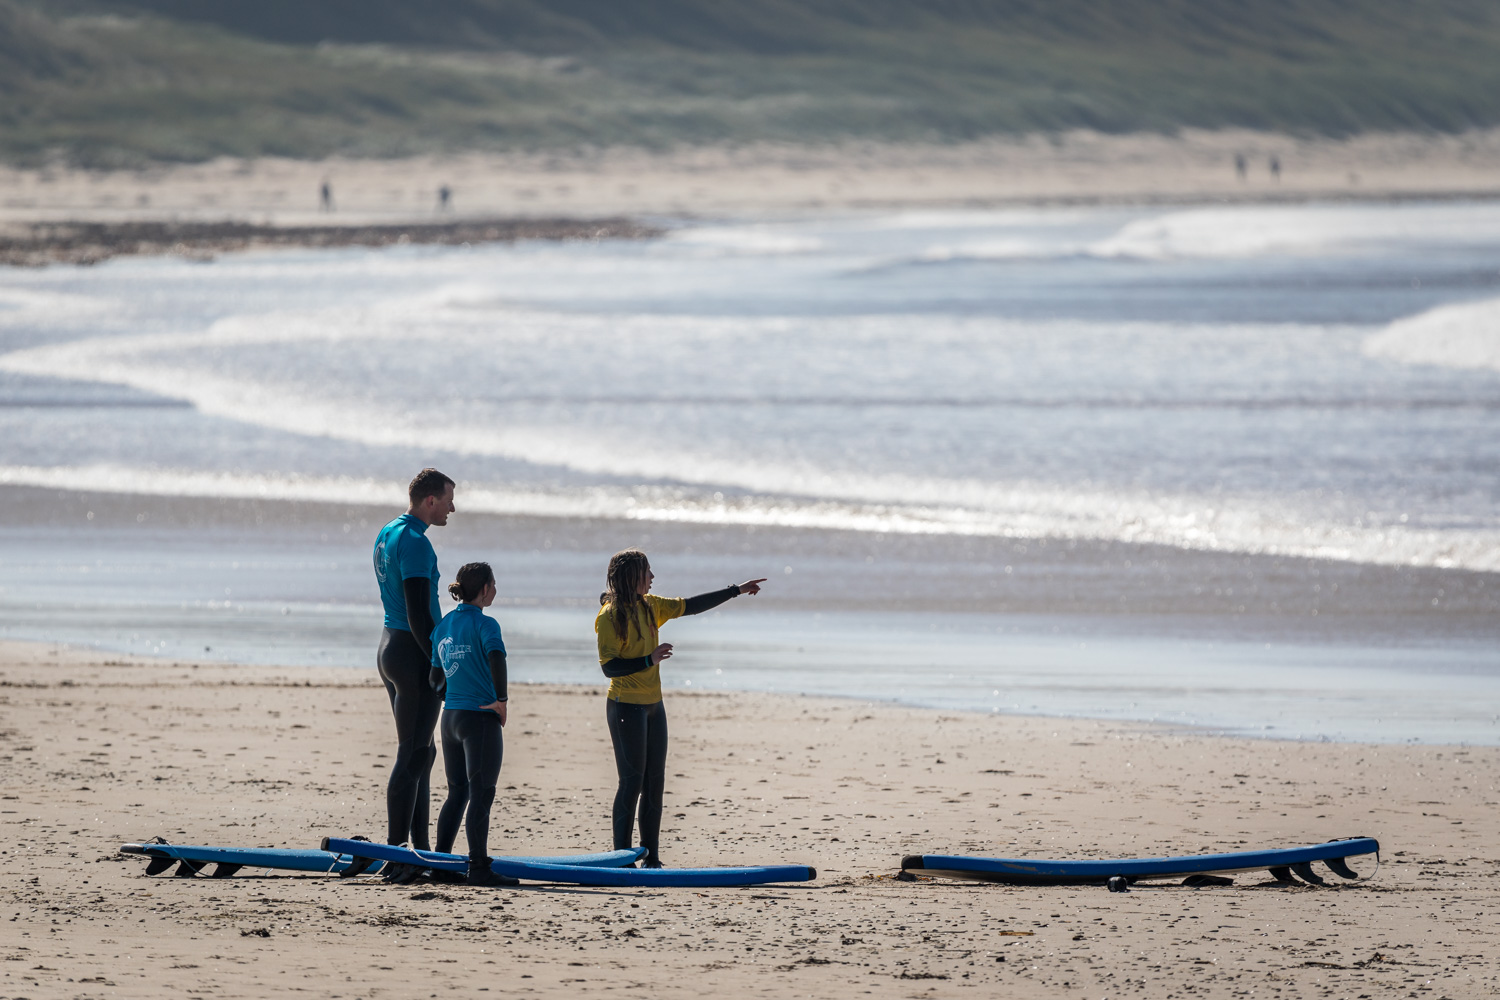 2 hour private surf lesson in Scotland: Highlands surfing course